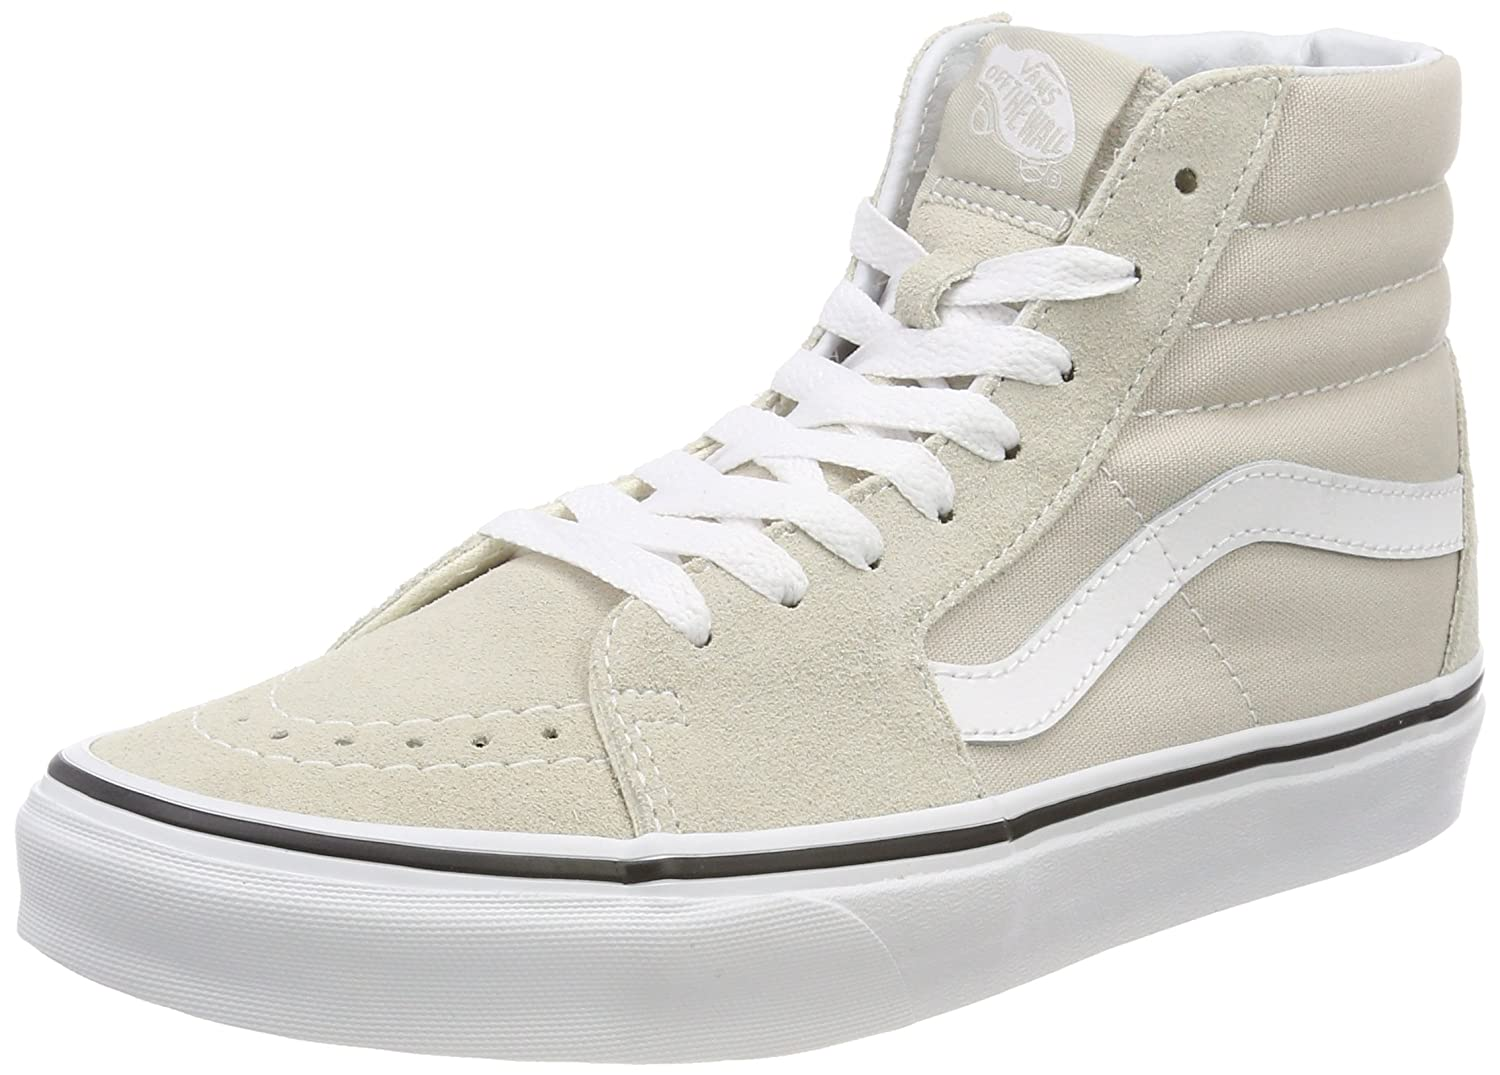 Vans Men's Sk8-Hi(Tm) Core Classics B074HBZB2S 9.5 D(M) US|Silver Lining/True White